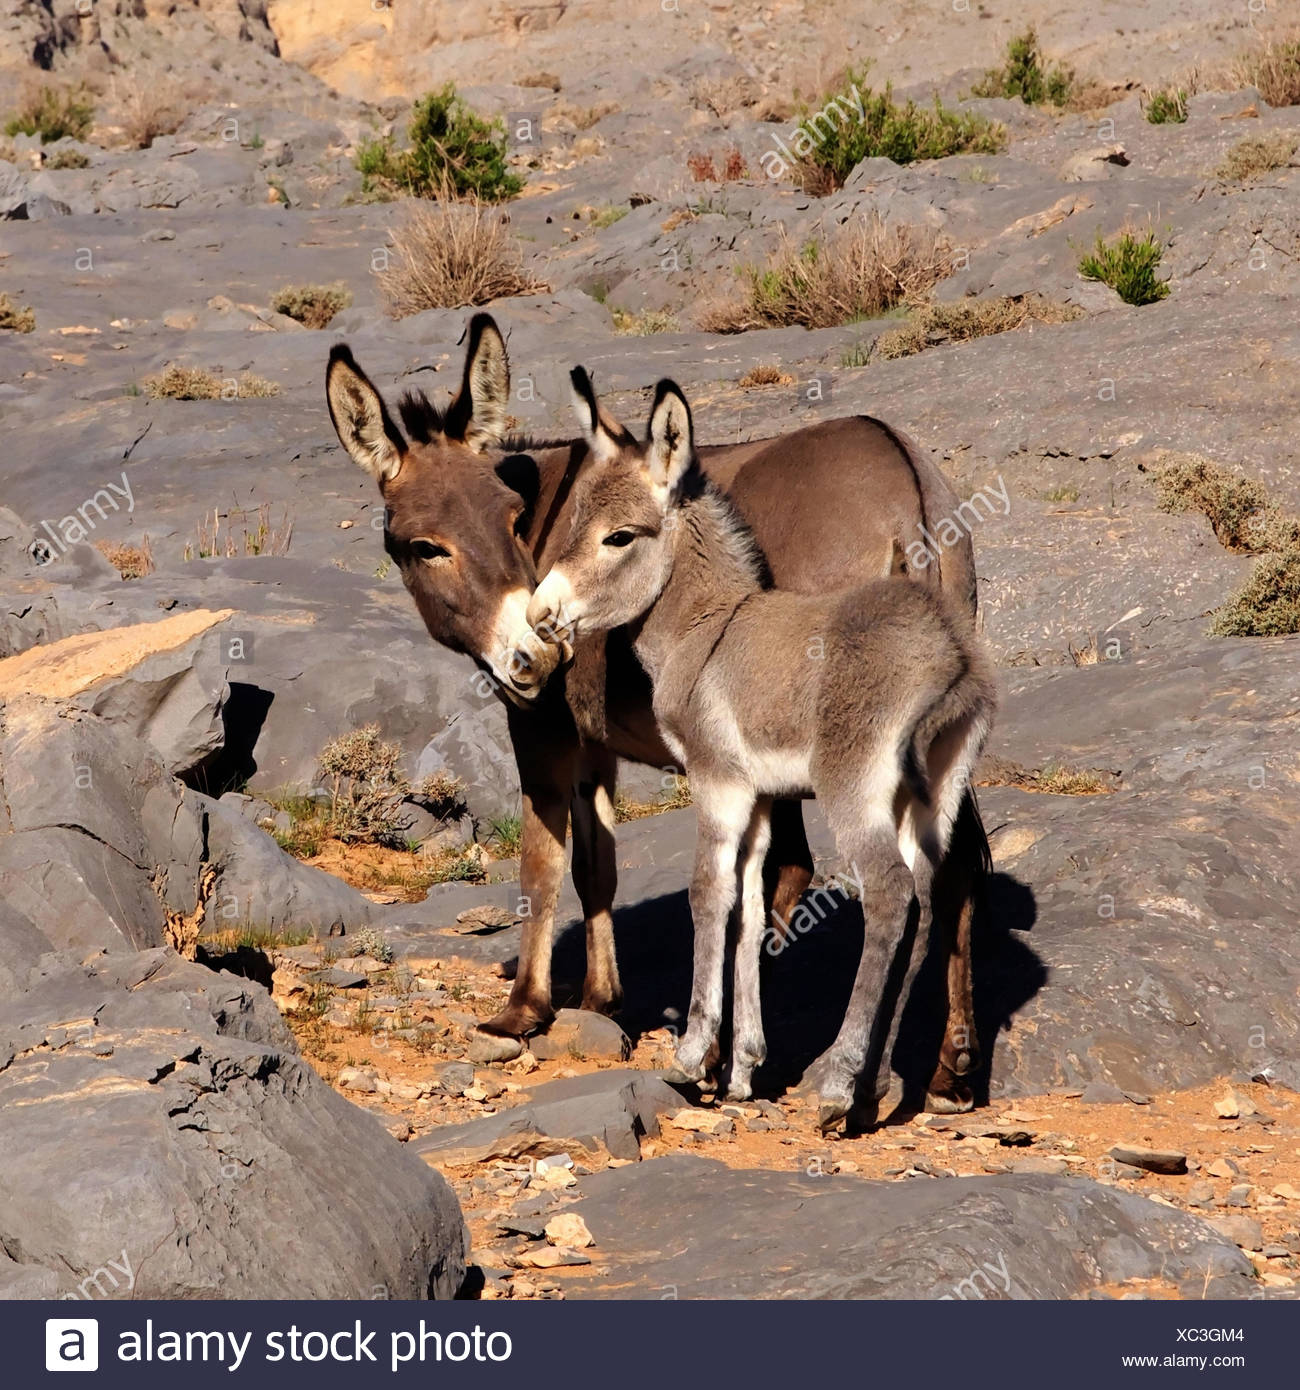 Donkey with younger generation,Oman - Stock Image